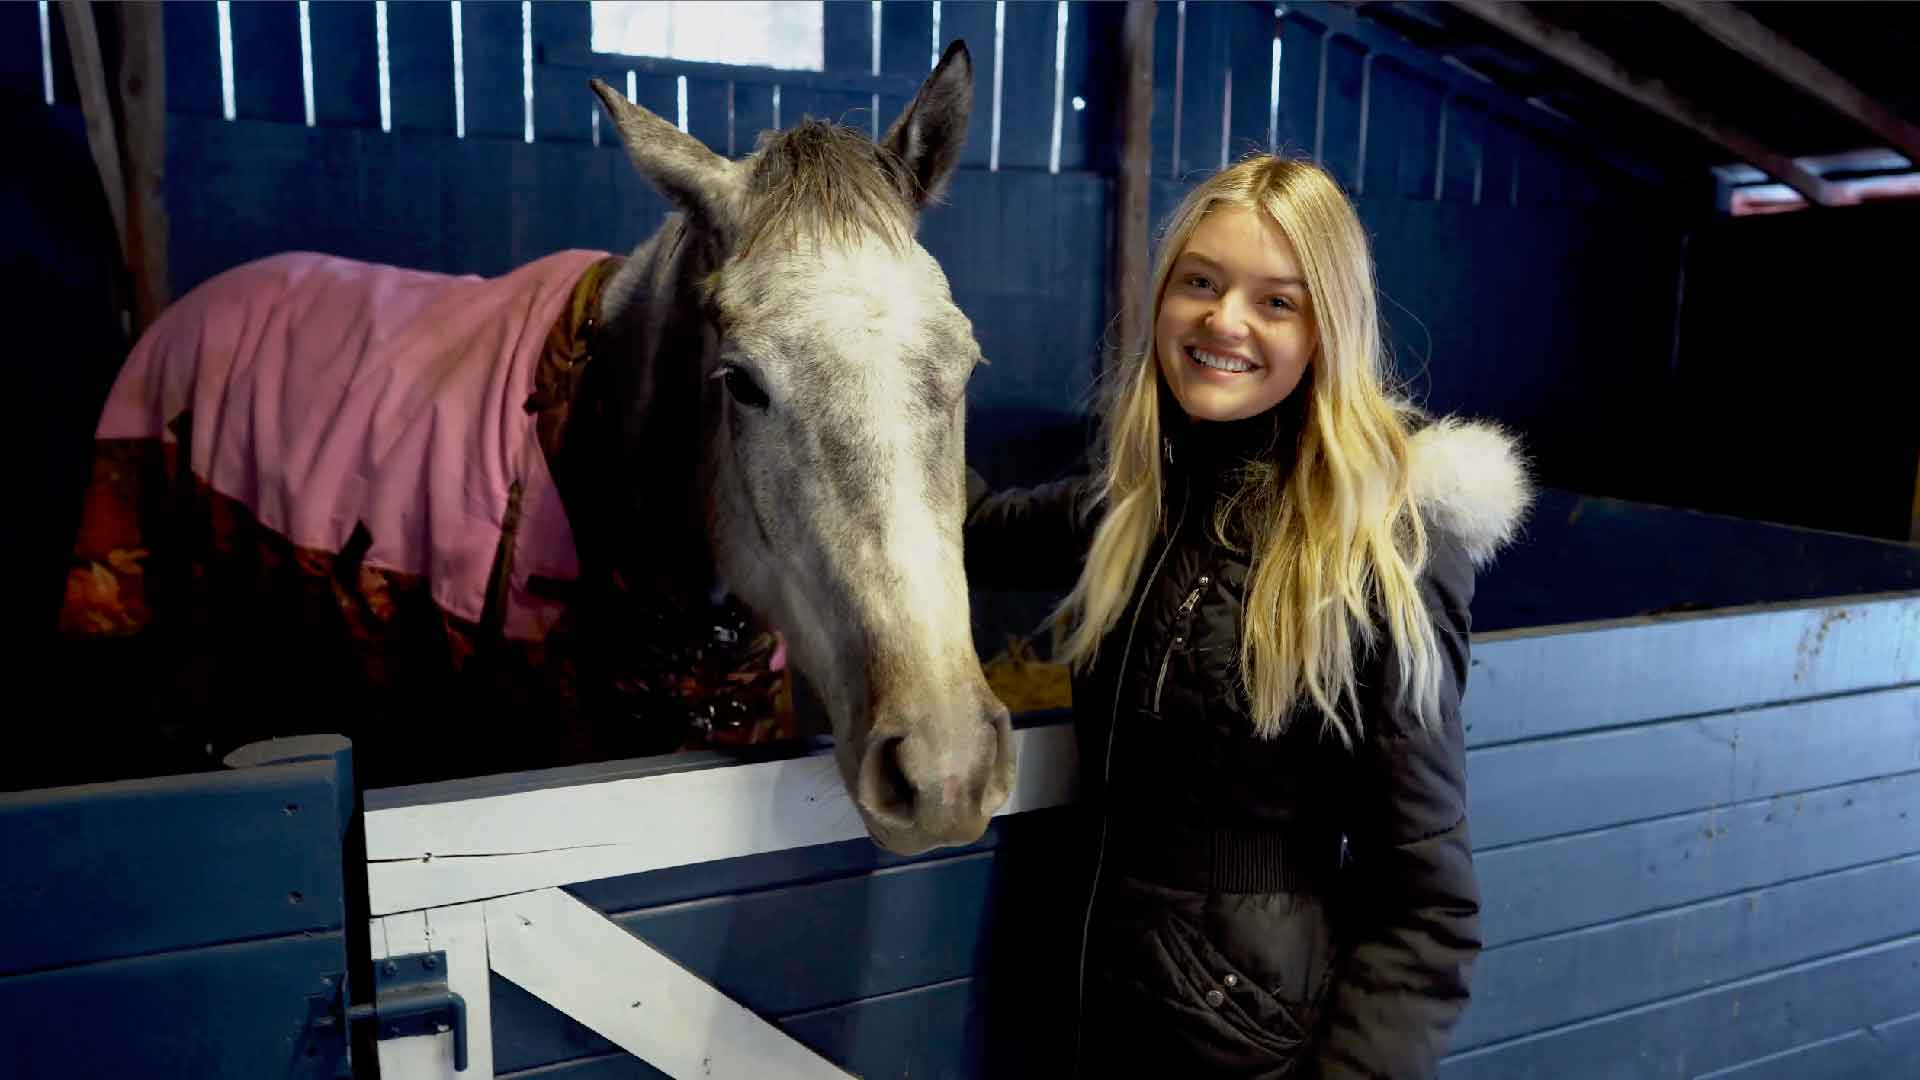 Willow standing next to a stall with one of her horses.